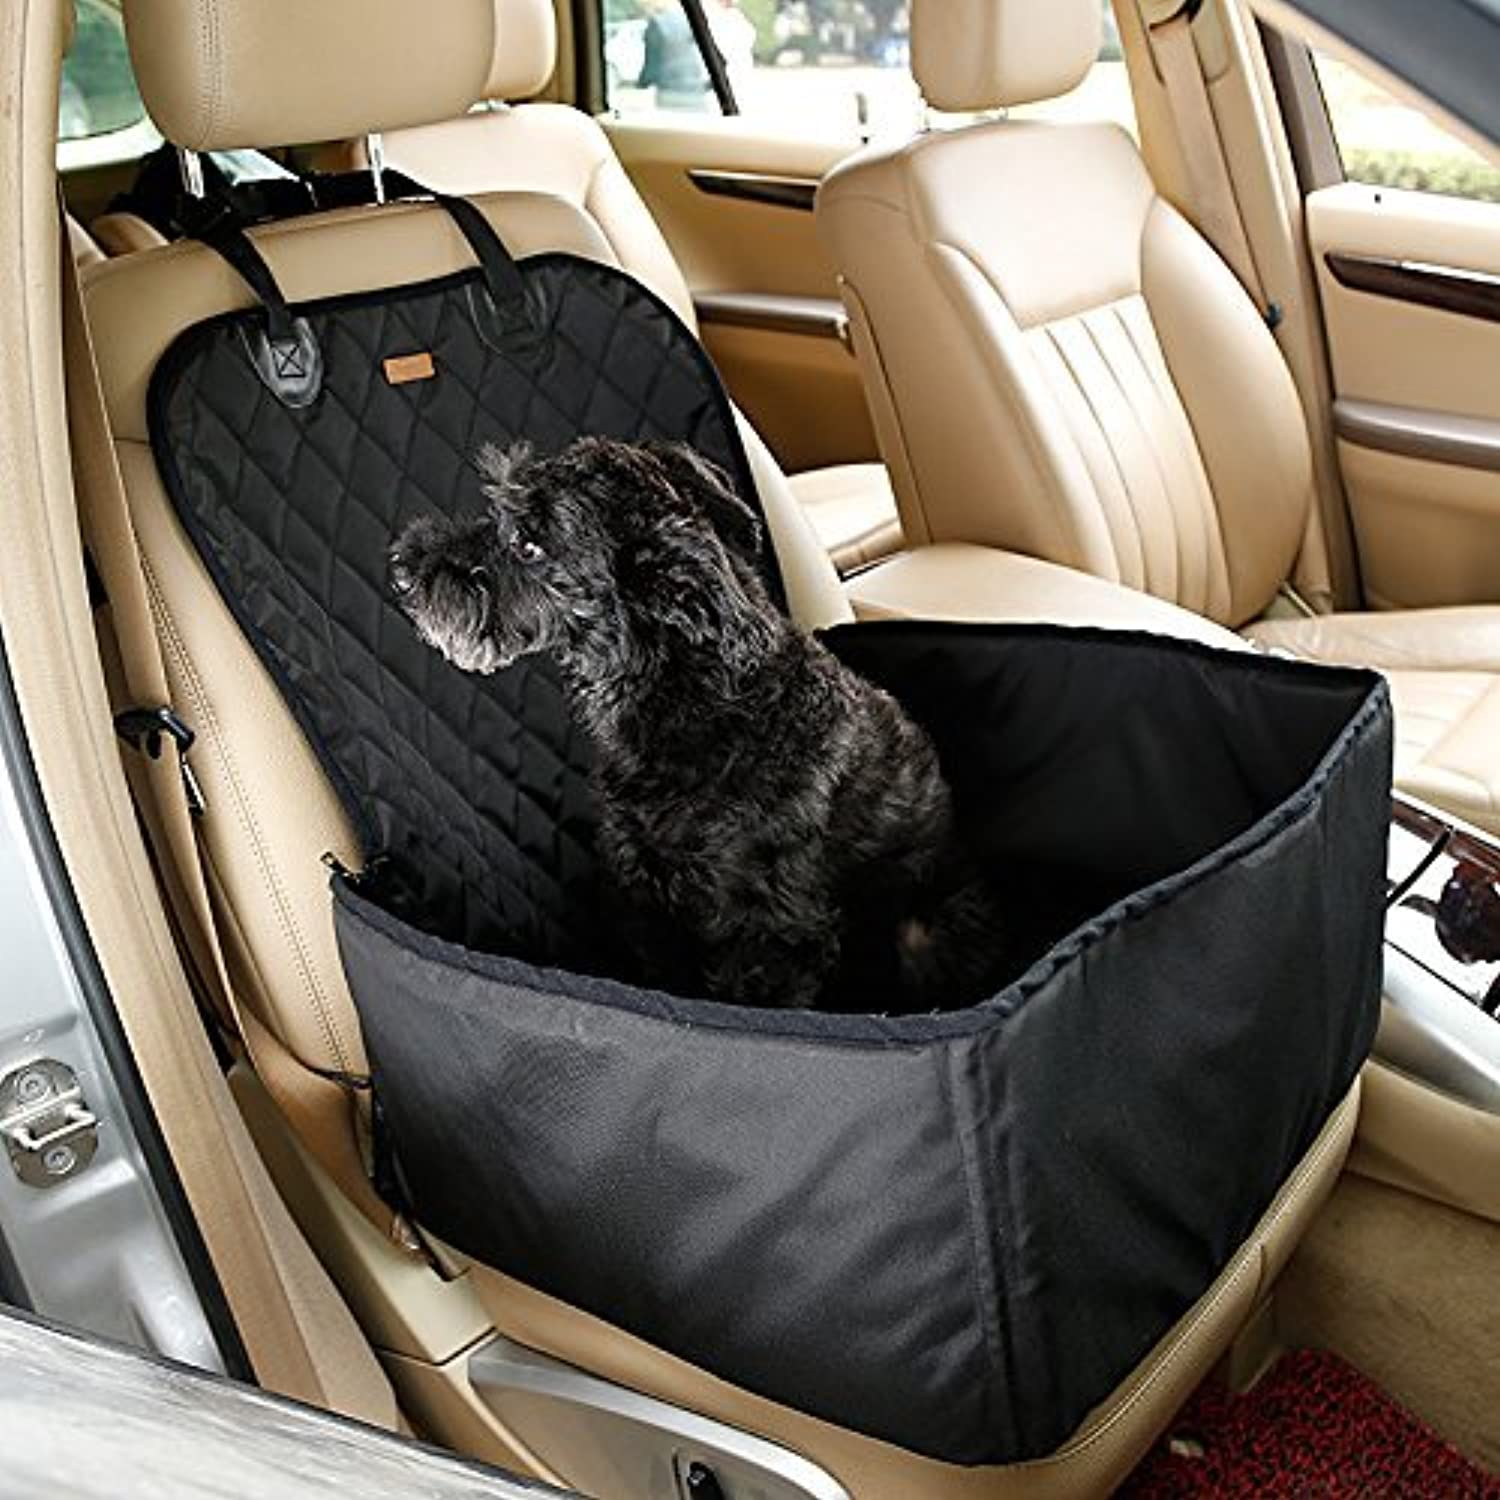 LLYU Pet car Dog car Booster seat Cover Waterproof Dog Bag Small Dog Outdoor Travel (color   Black)